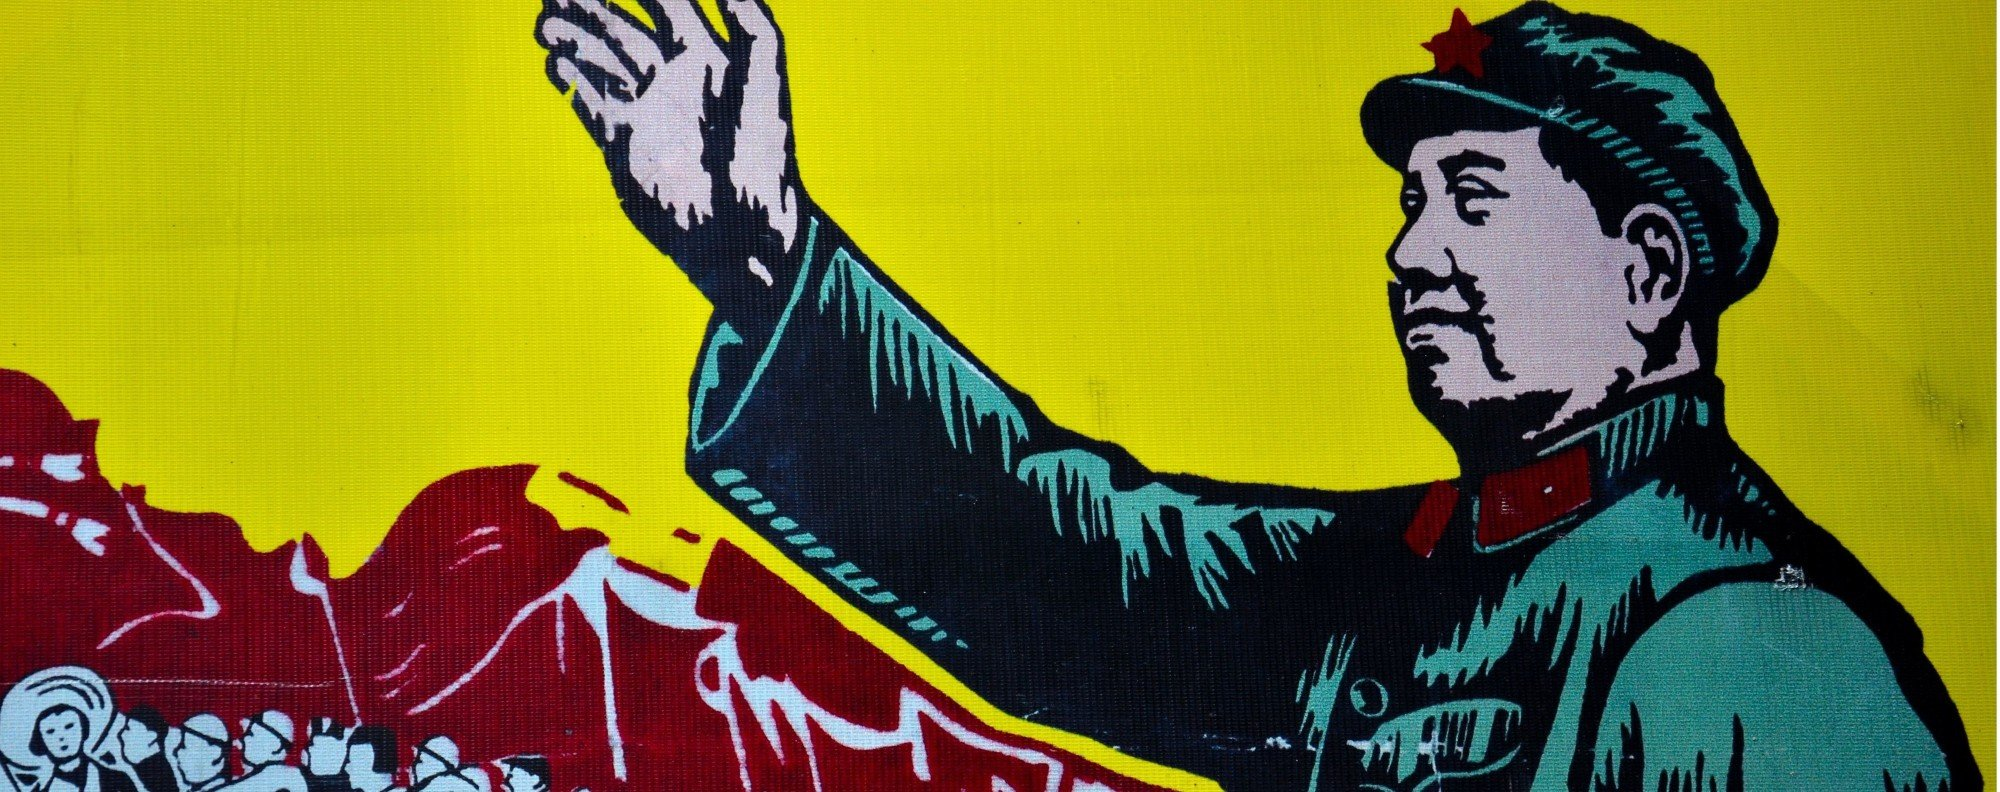 Mao Zedong: Great Helmsman. Photo: Shutterstock